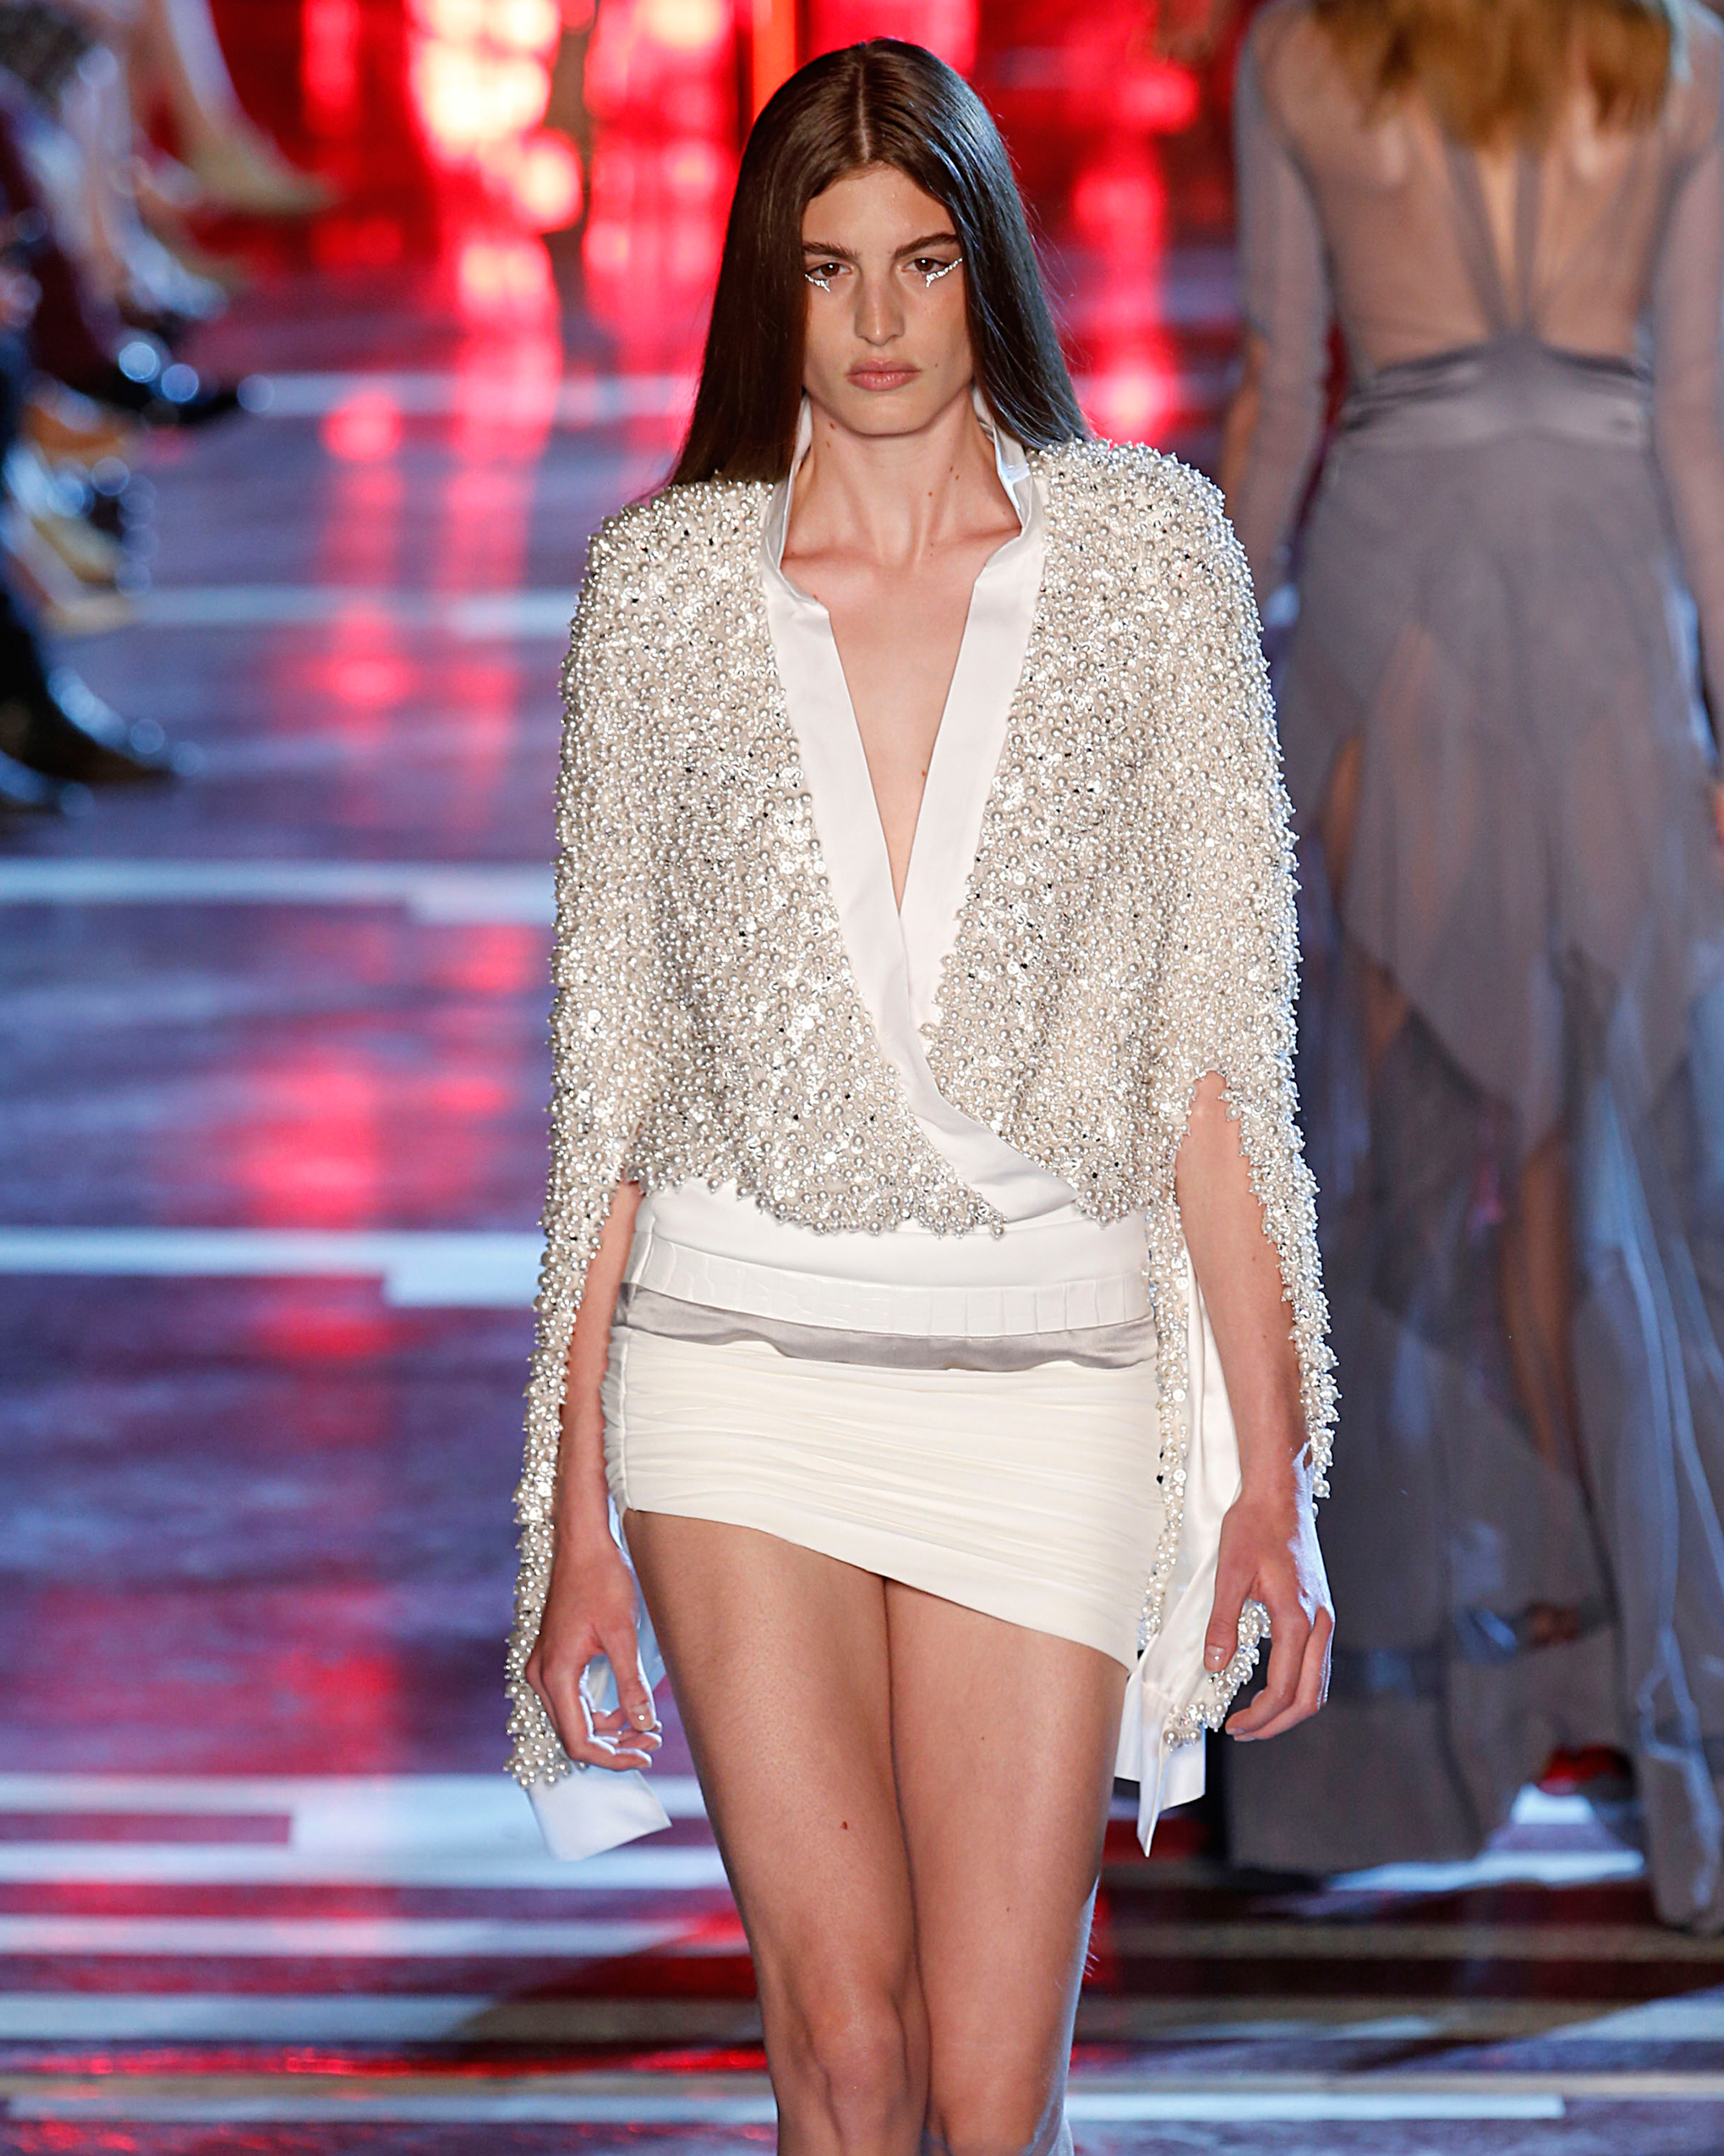 haute-couture-fall-2014-alexandre-vauthier-0714.jpg